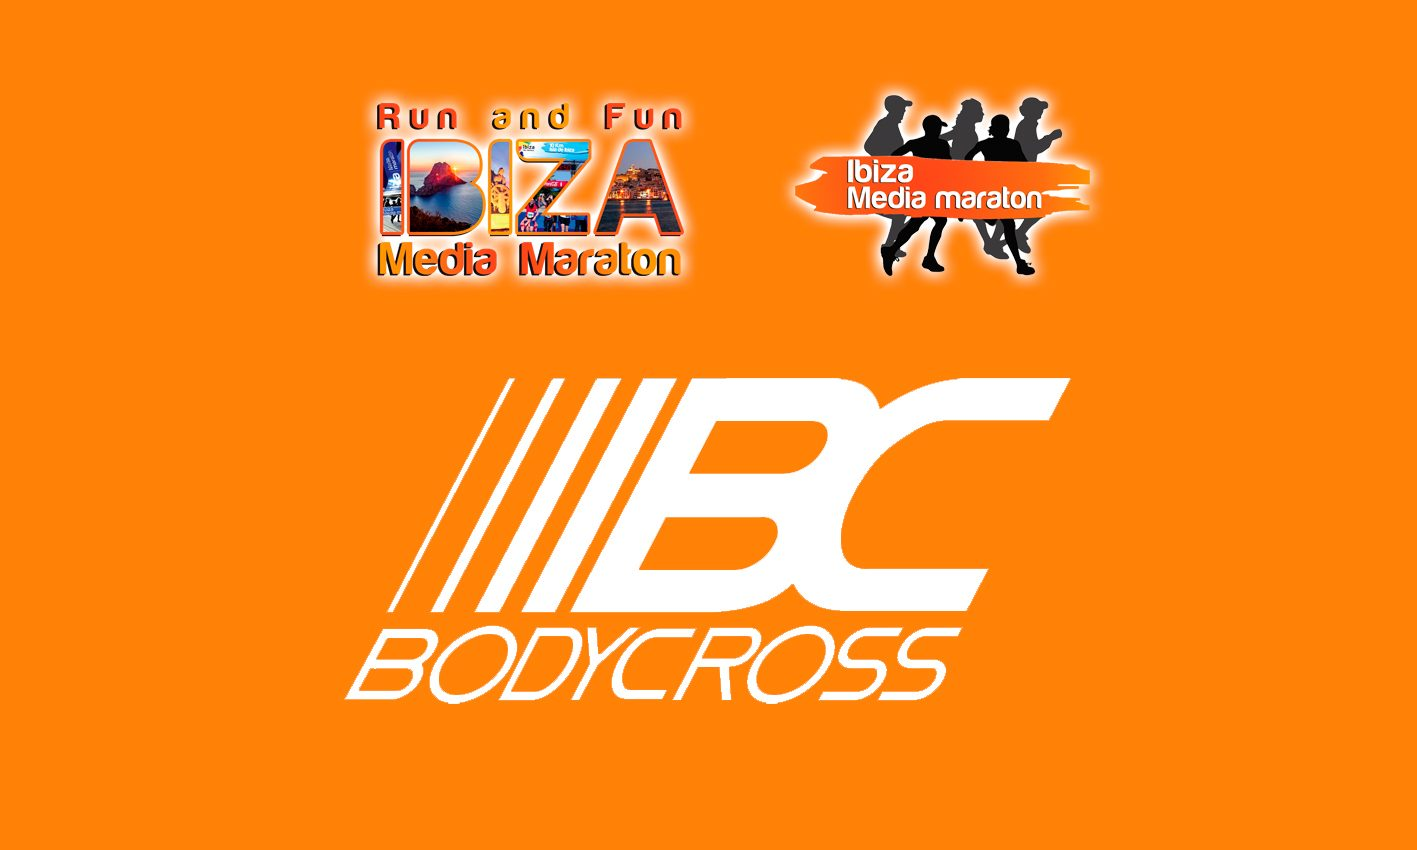 Body Cross, Camiseta Oficial De La Ibiza Media Maratón